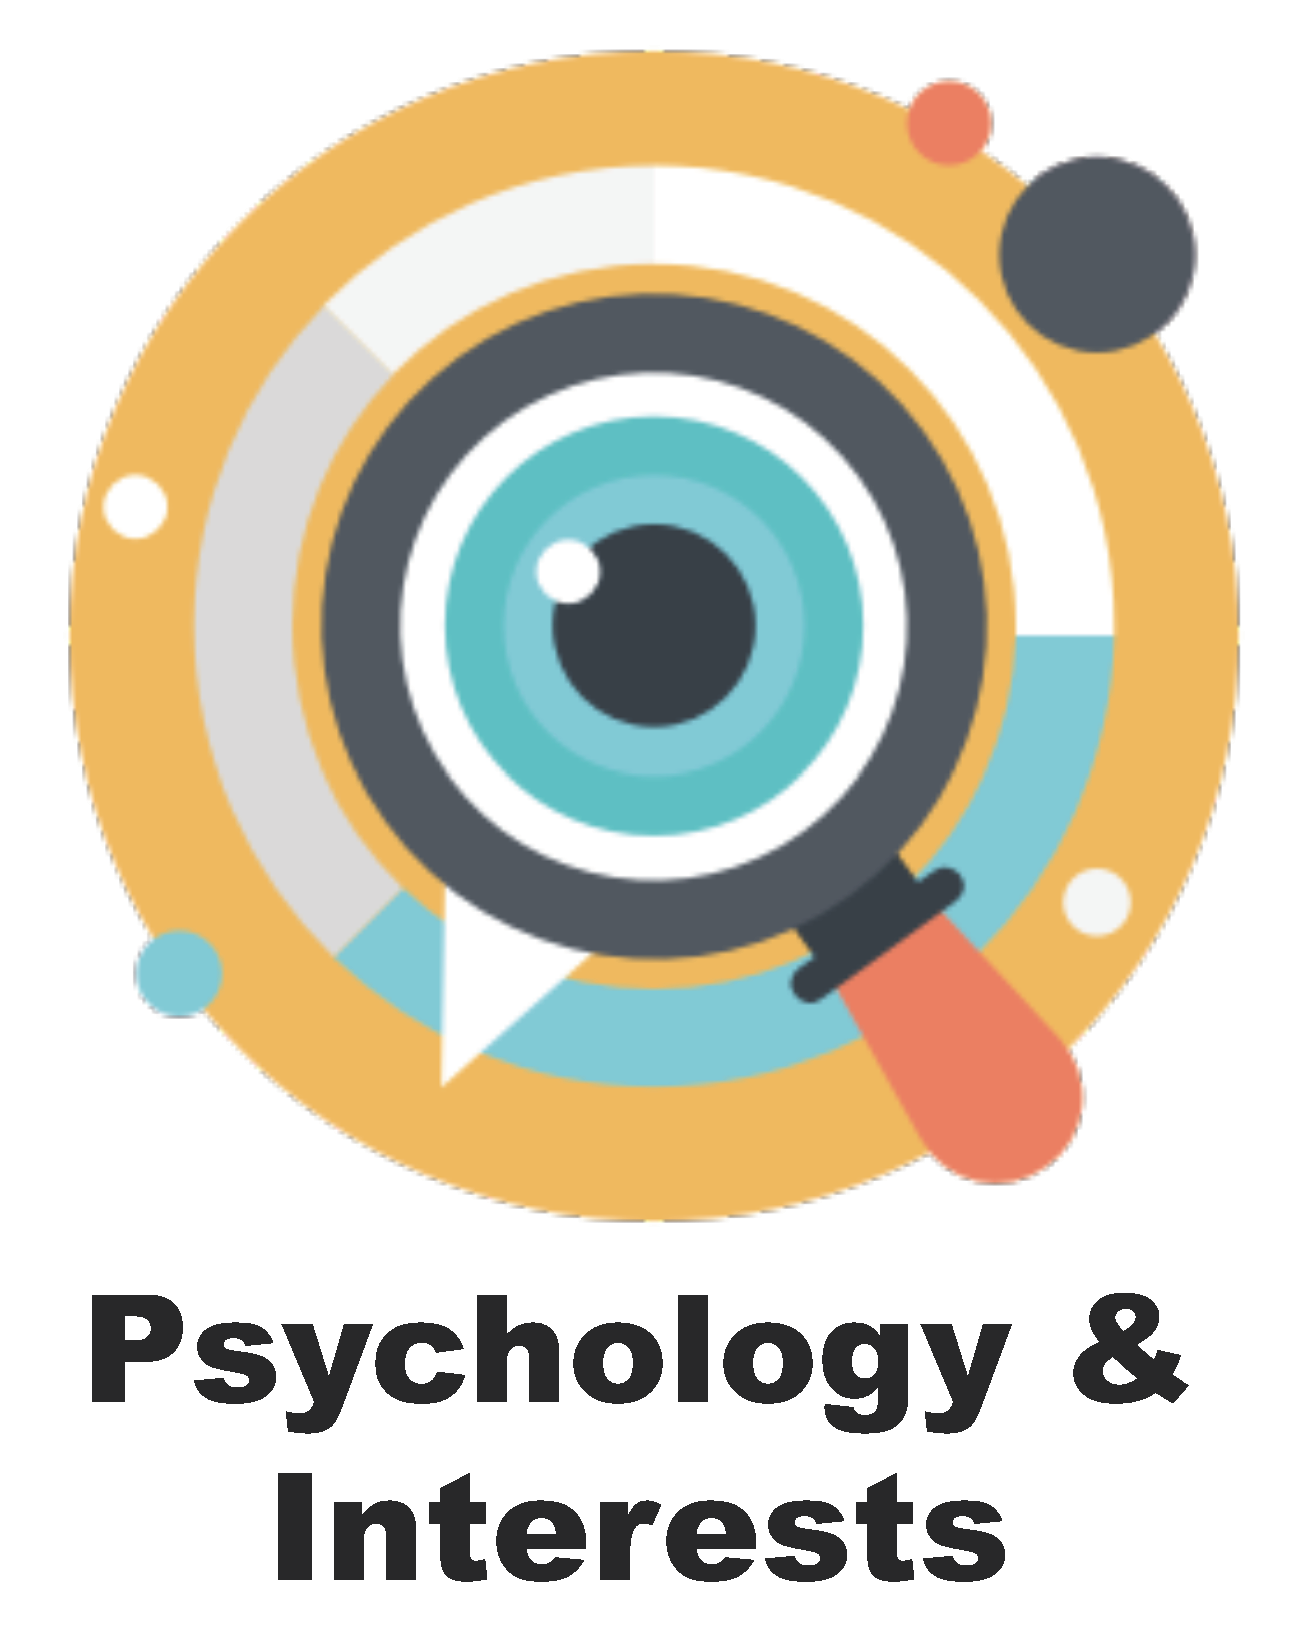 Psychology and interests link